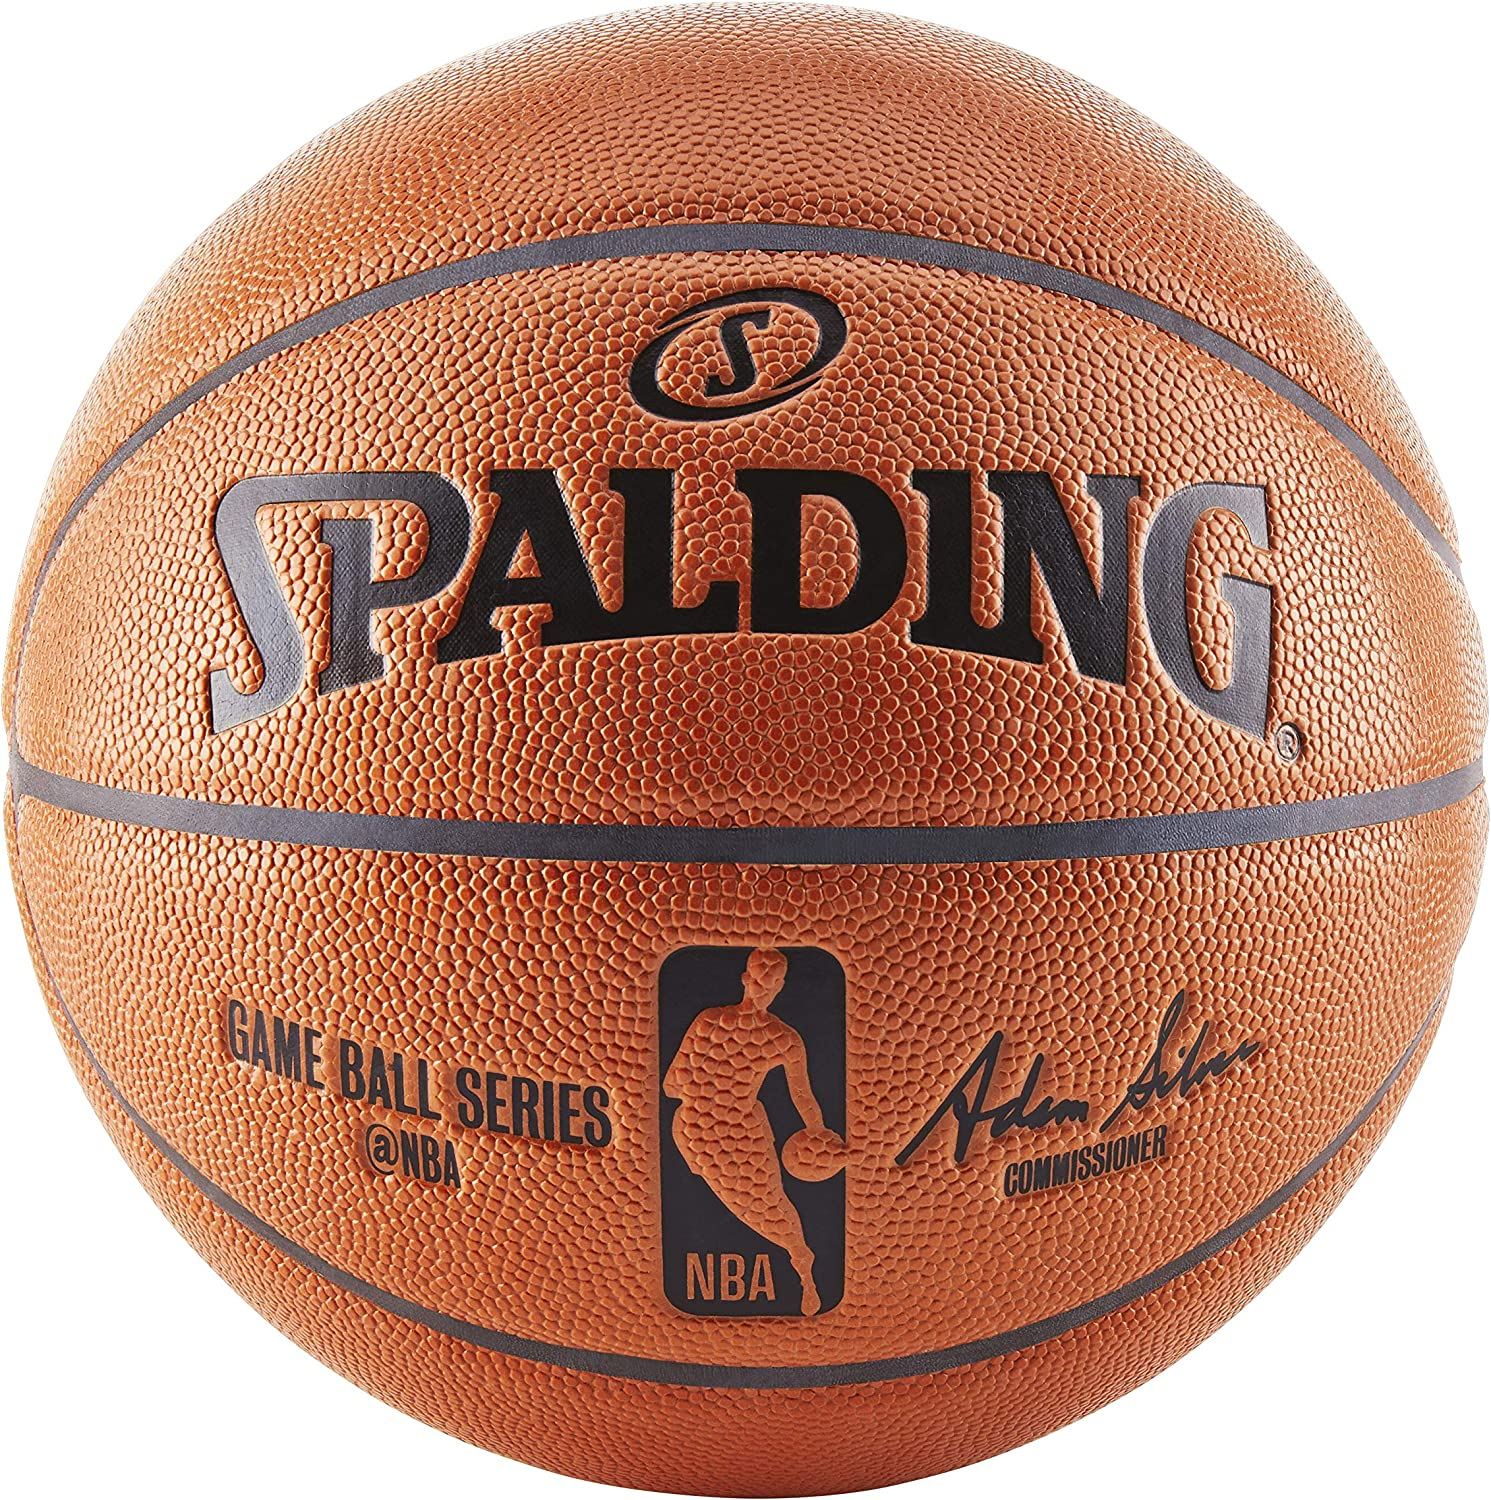 Spalding NBA Replica Indoor-Outdoor Game Ball Series Basketball